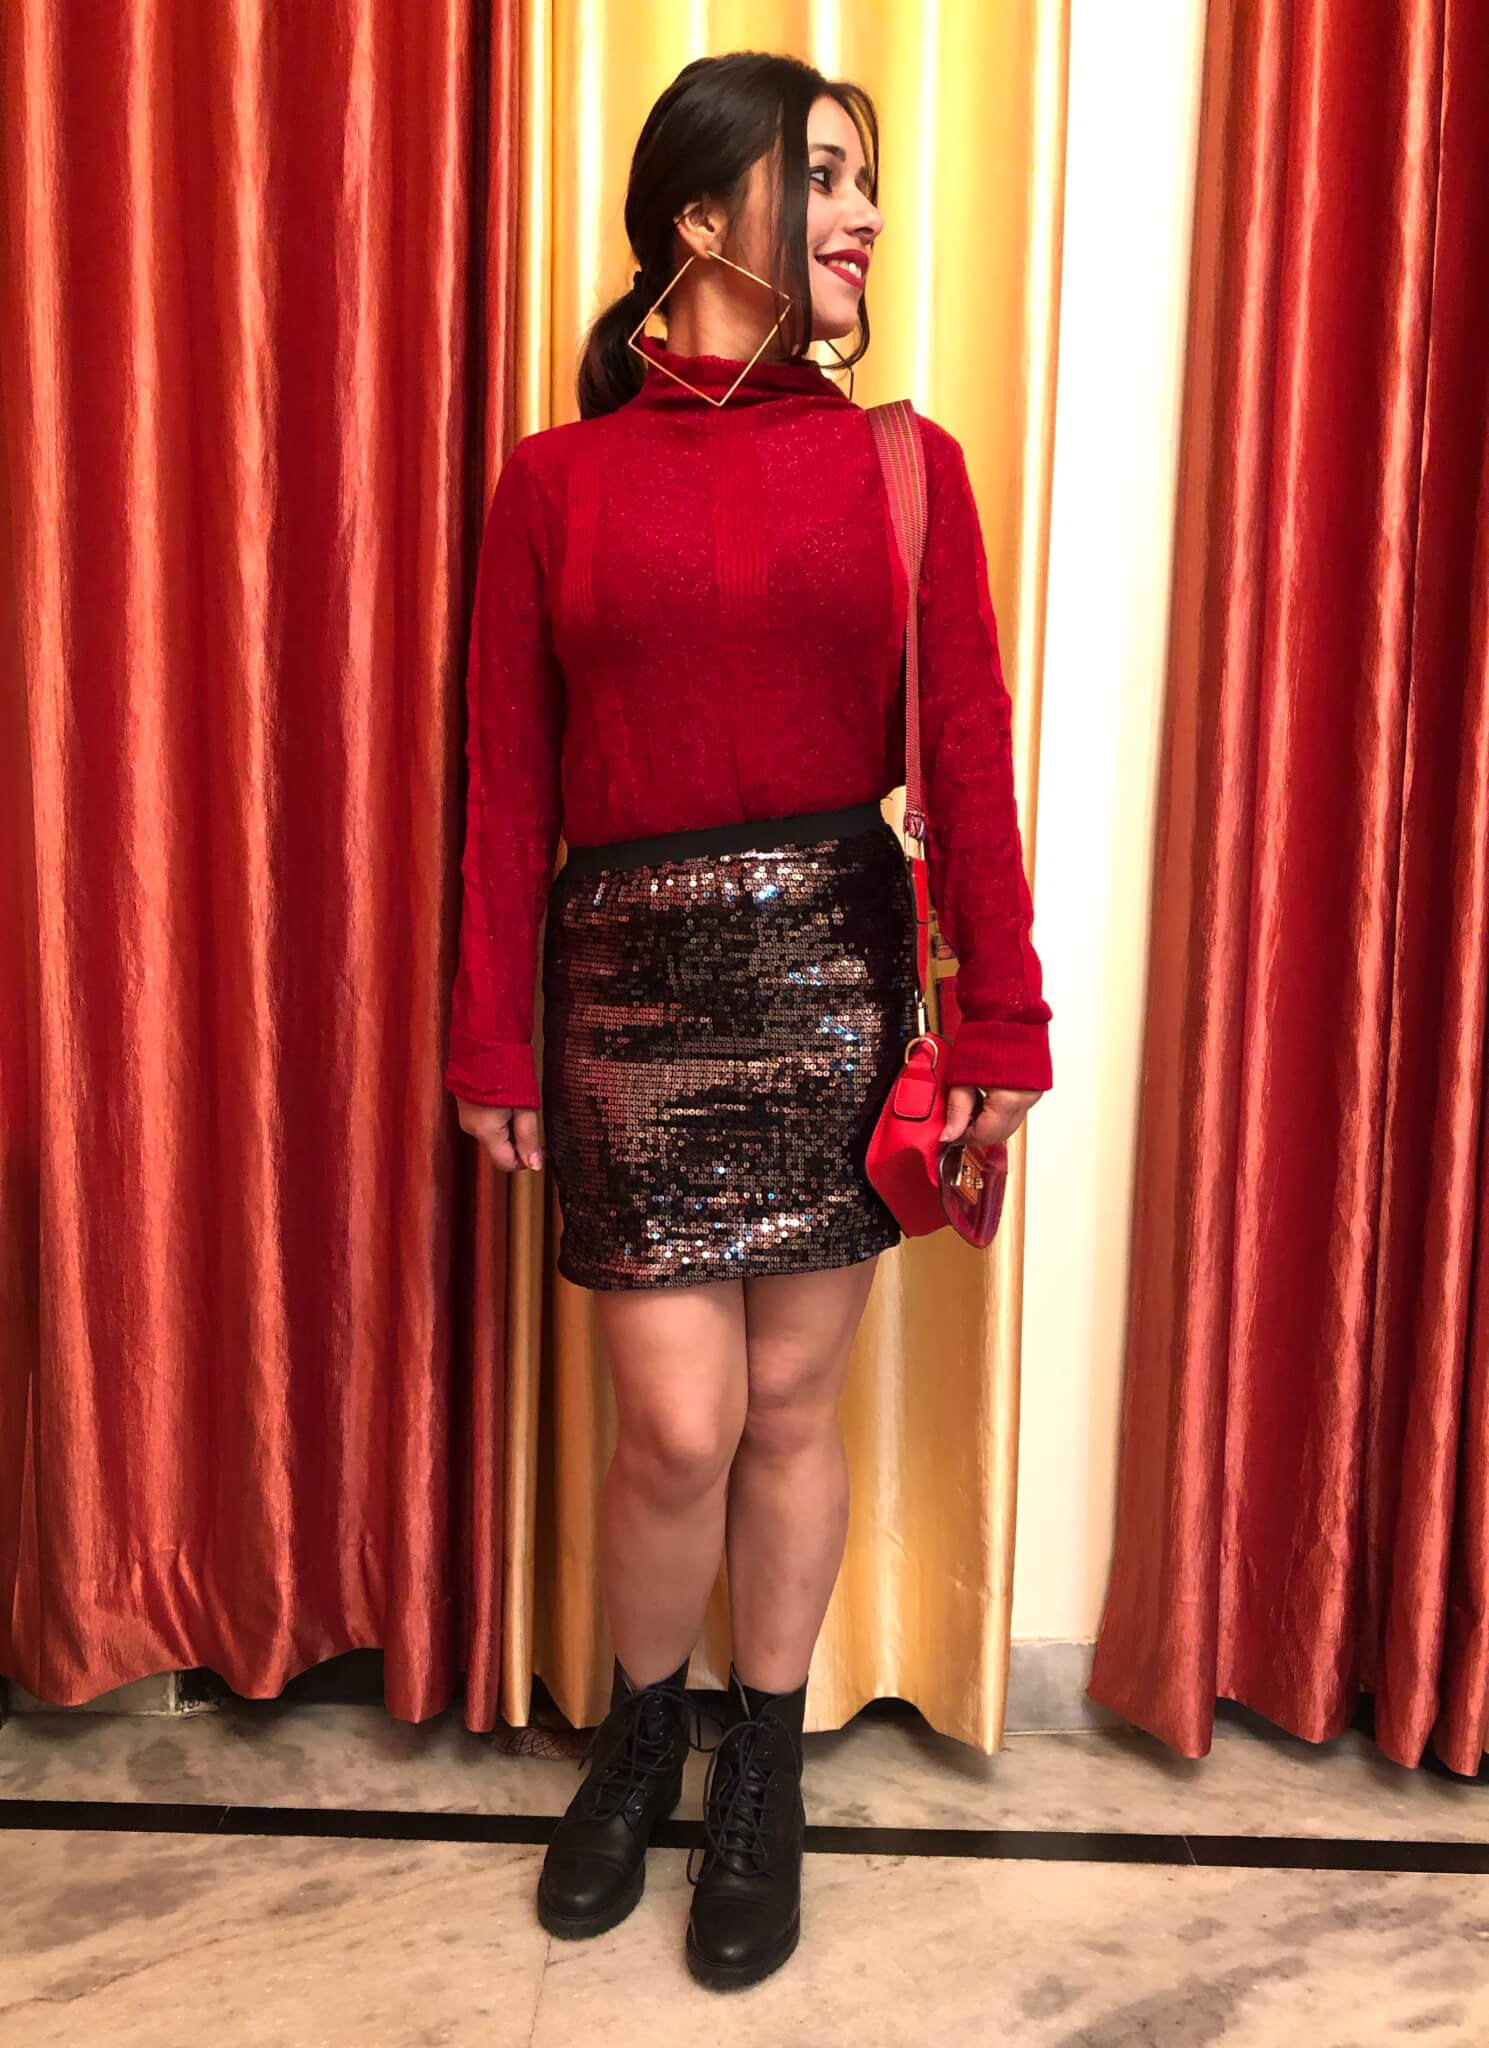 A turtleneck top with a sequin skirt-winter season outfit ideas